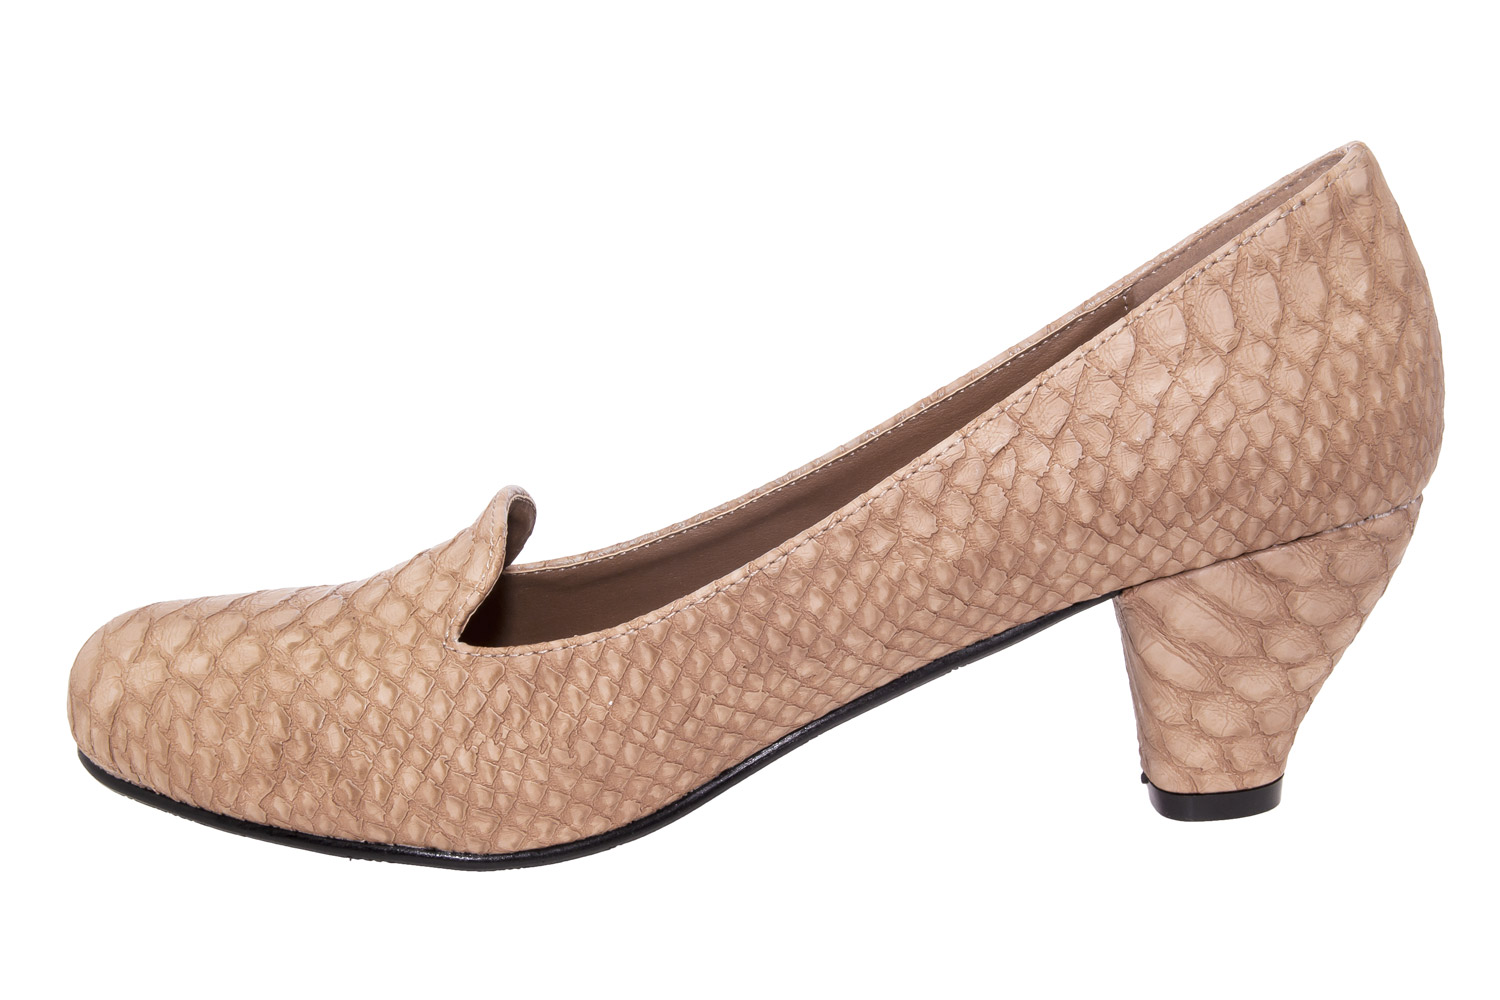 Slipper Tacon Serpiente Beige